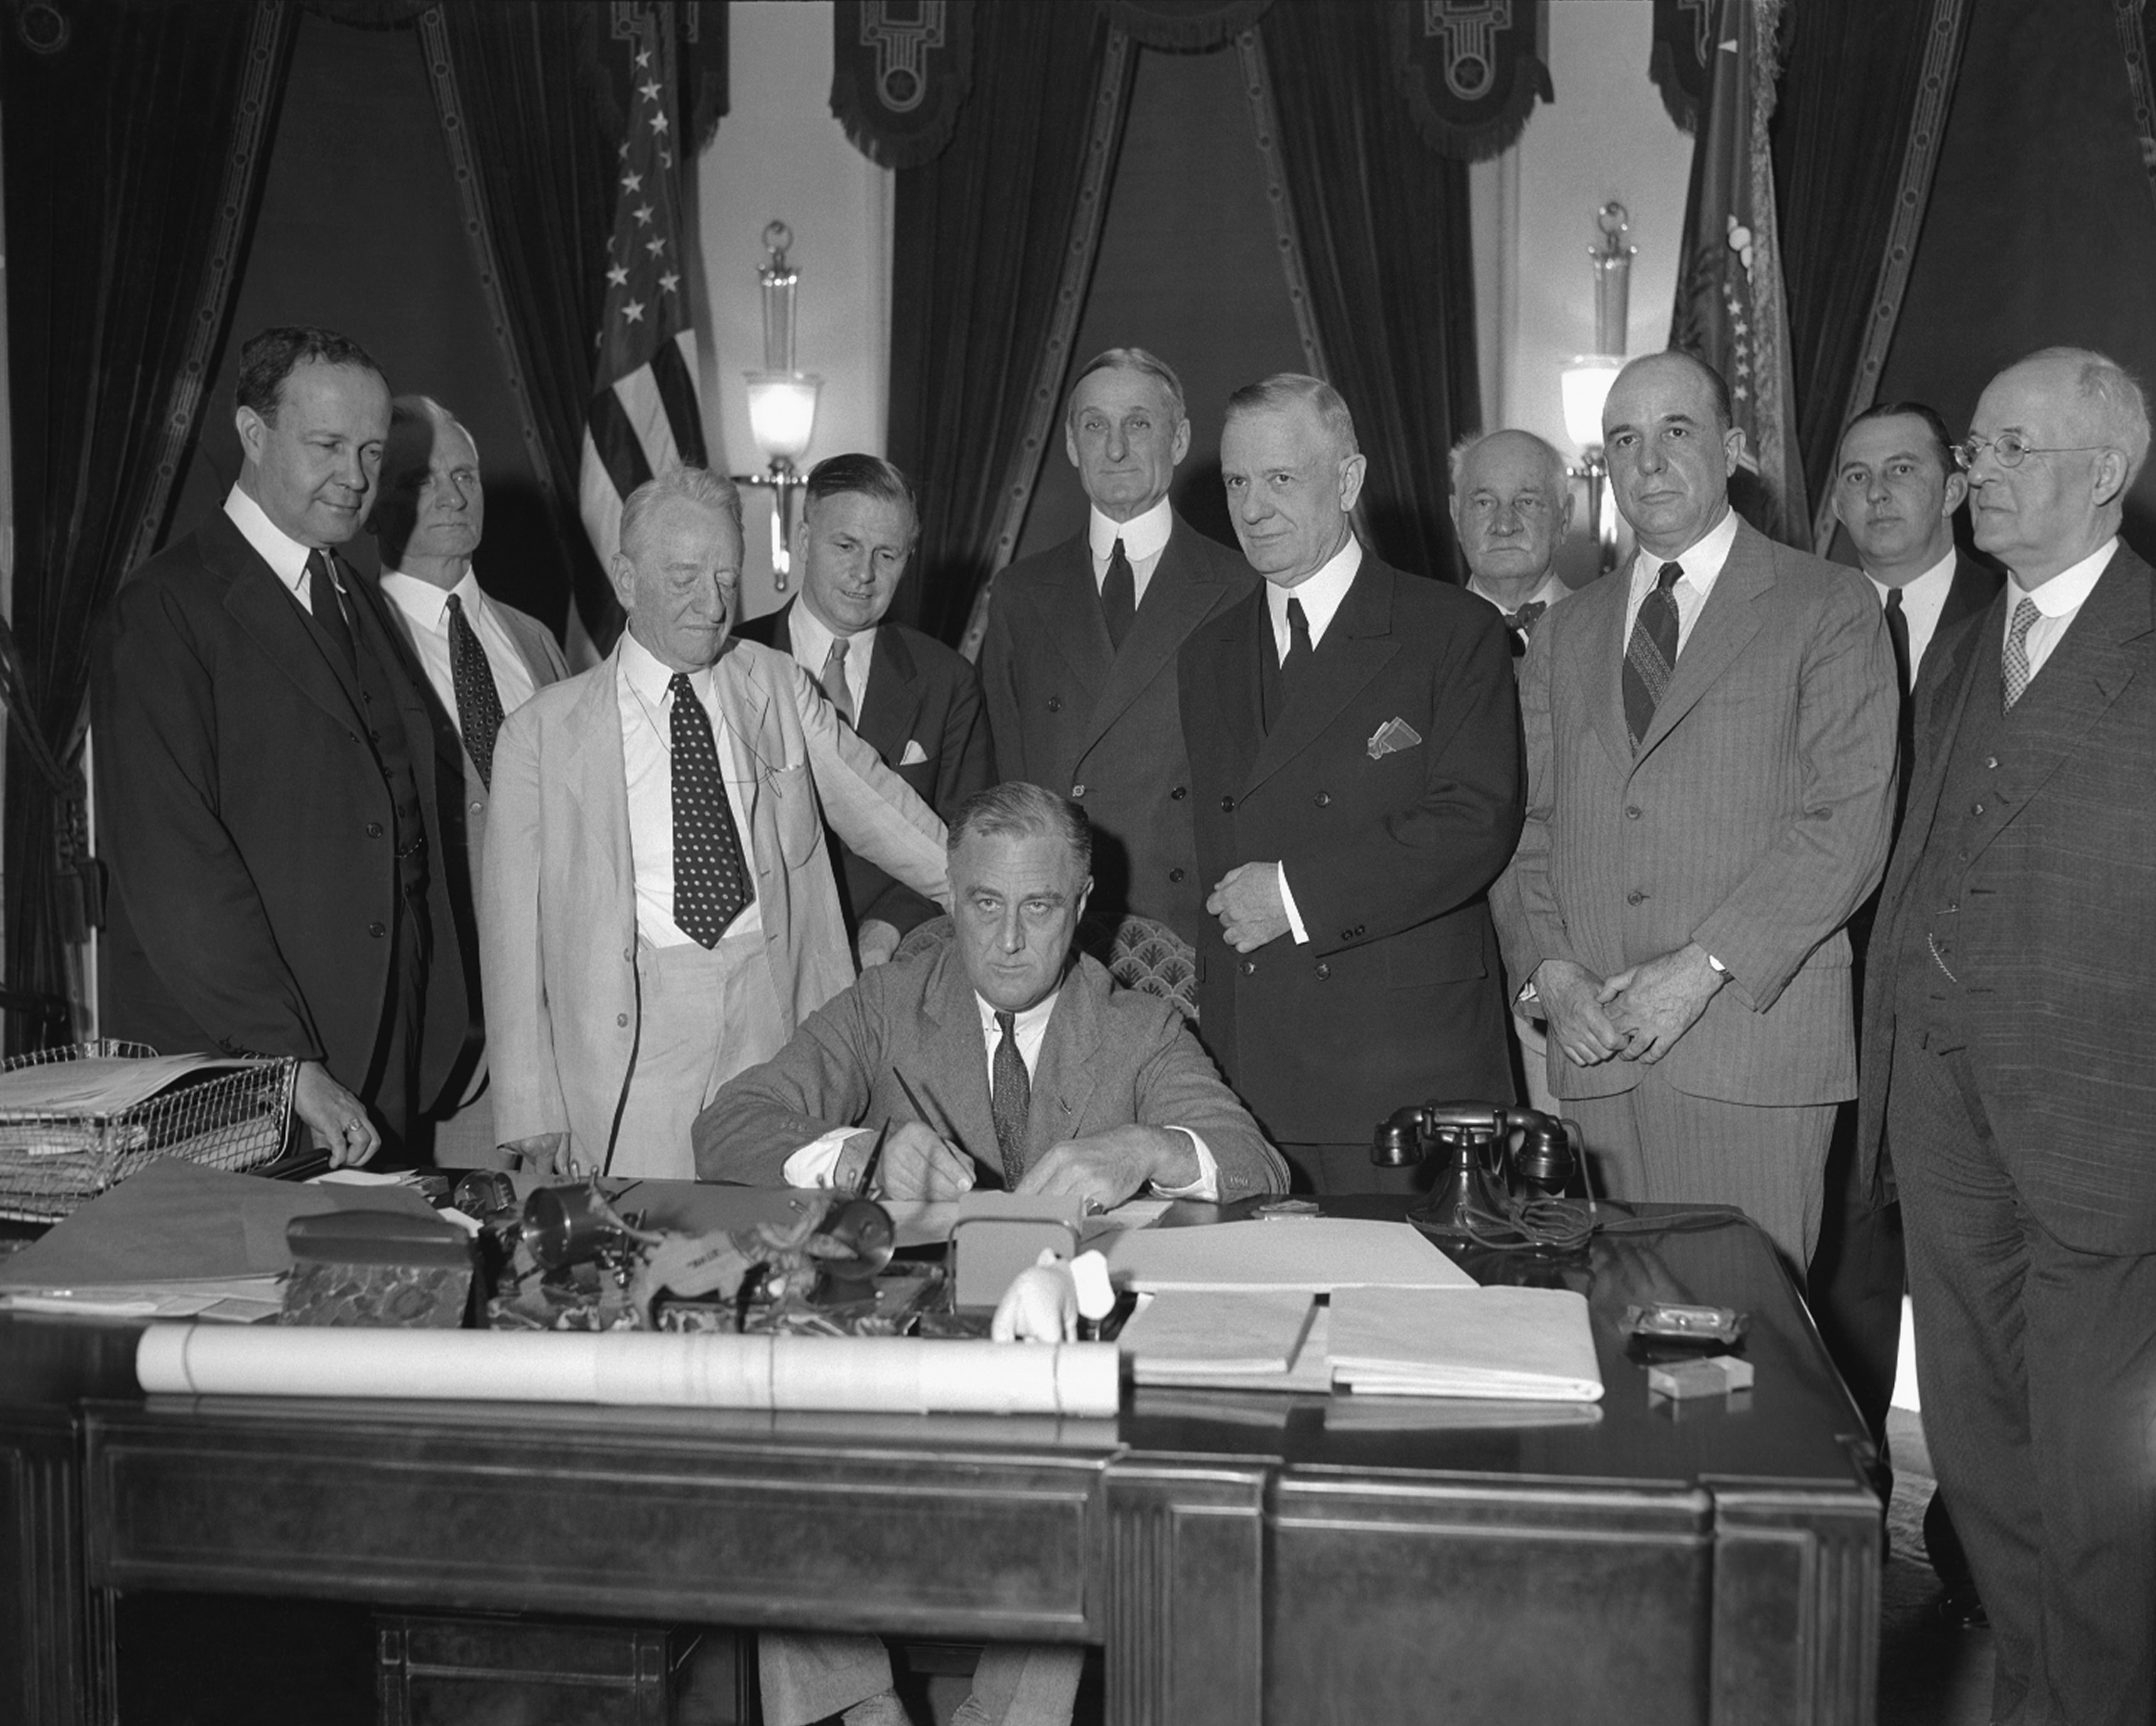 Franklin D. Roosevelt at desk surrounded by men standing (© AP Images)